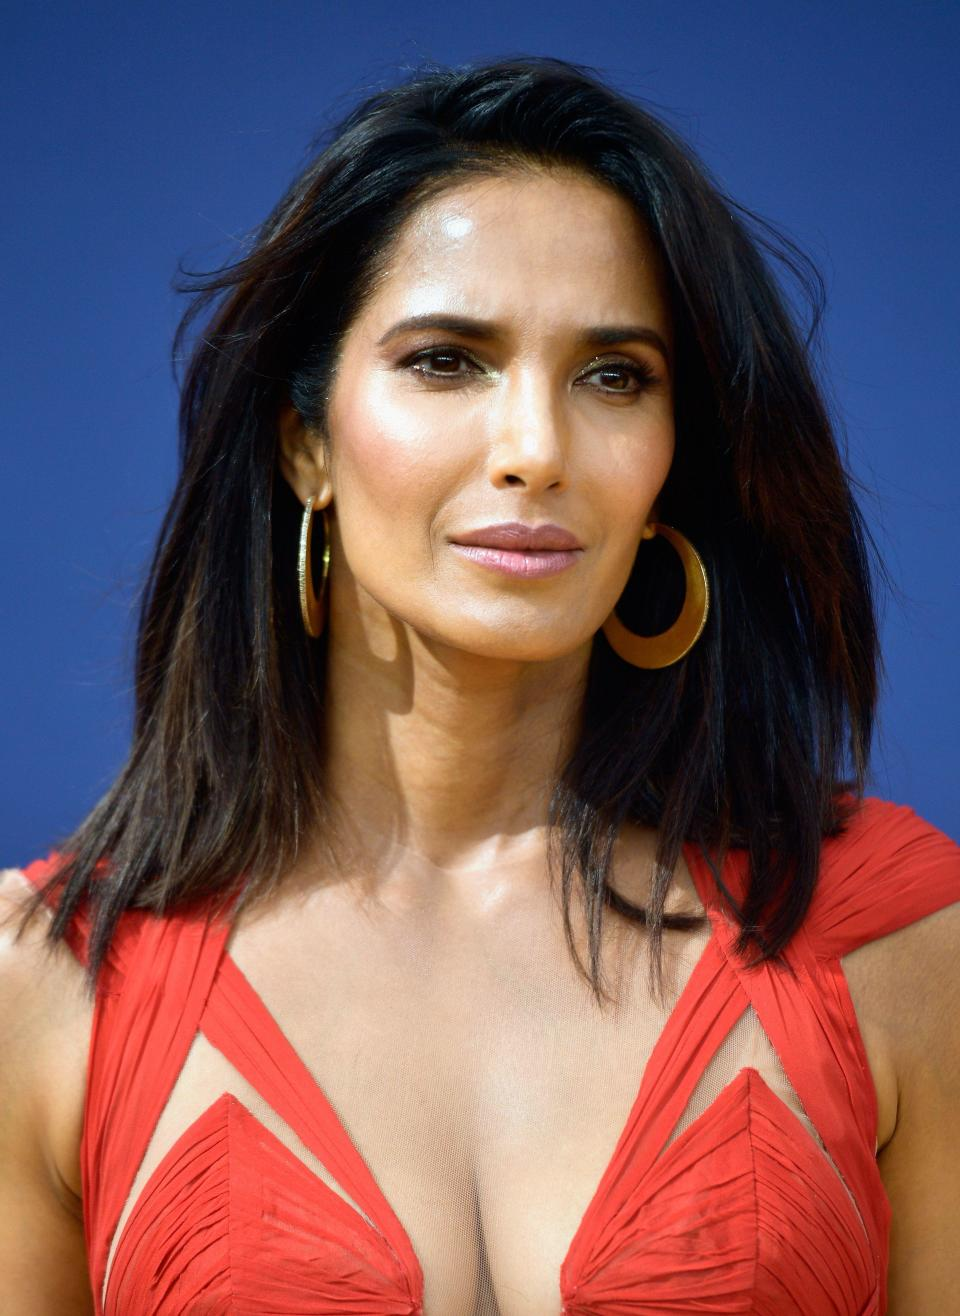 <p>You could spot Padma Lakshmi's metallic inner-eye highlight from a mile away. And her sleek blowout by Michael Dueñas also deserves five stars.</p>